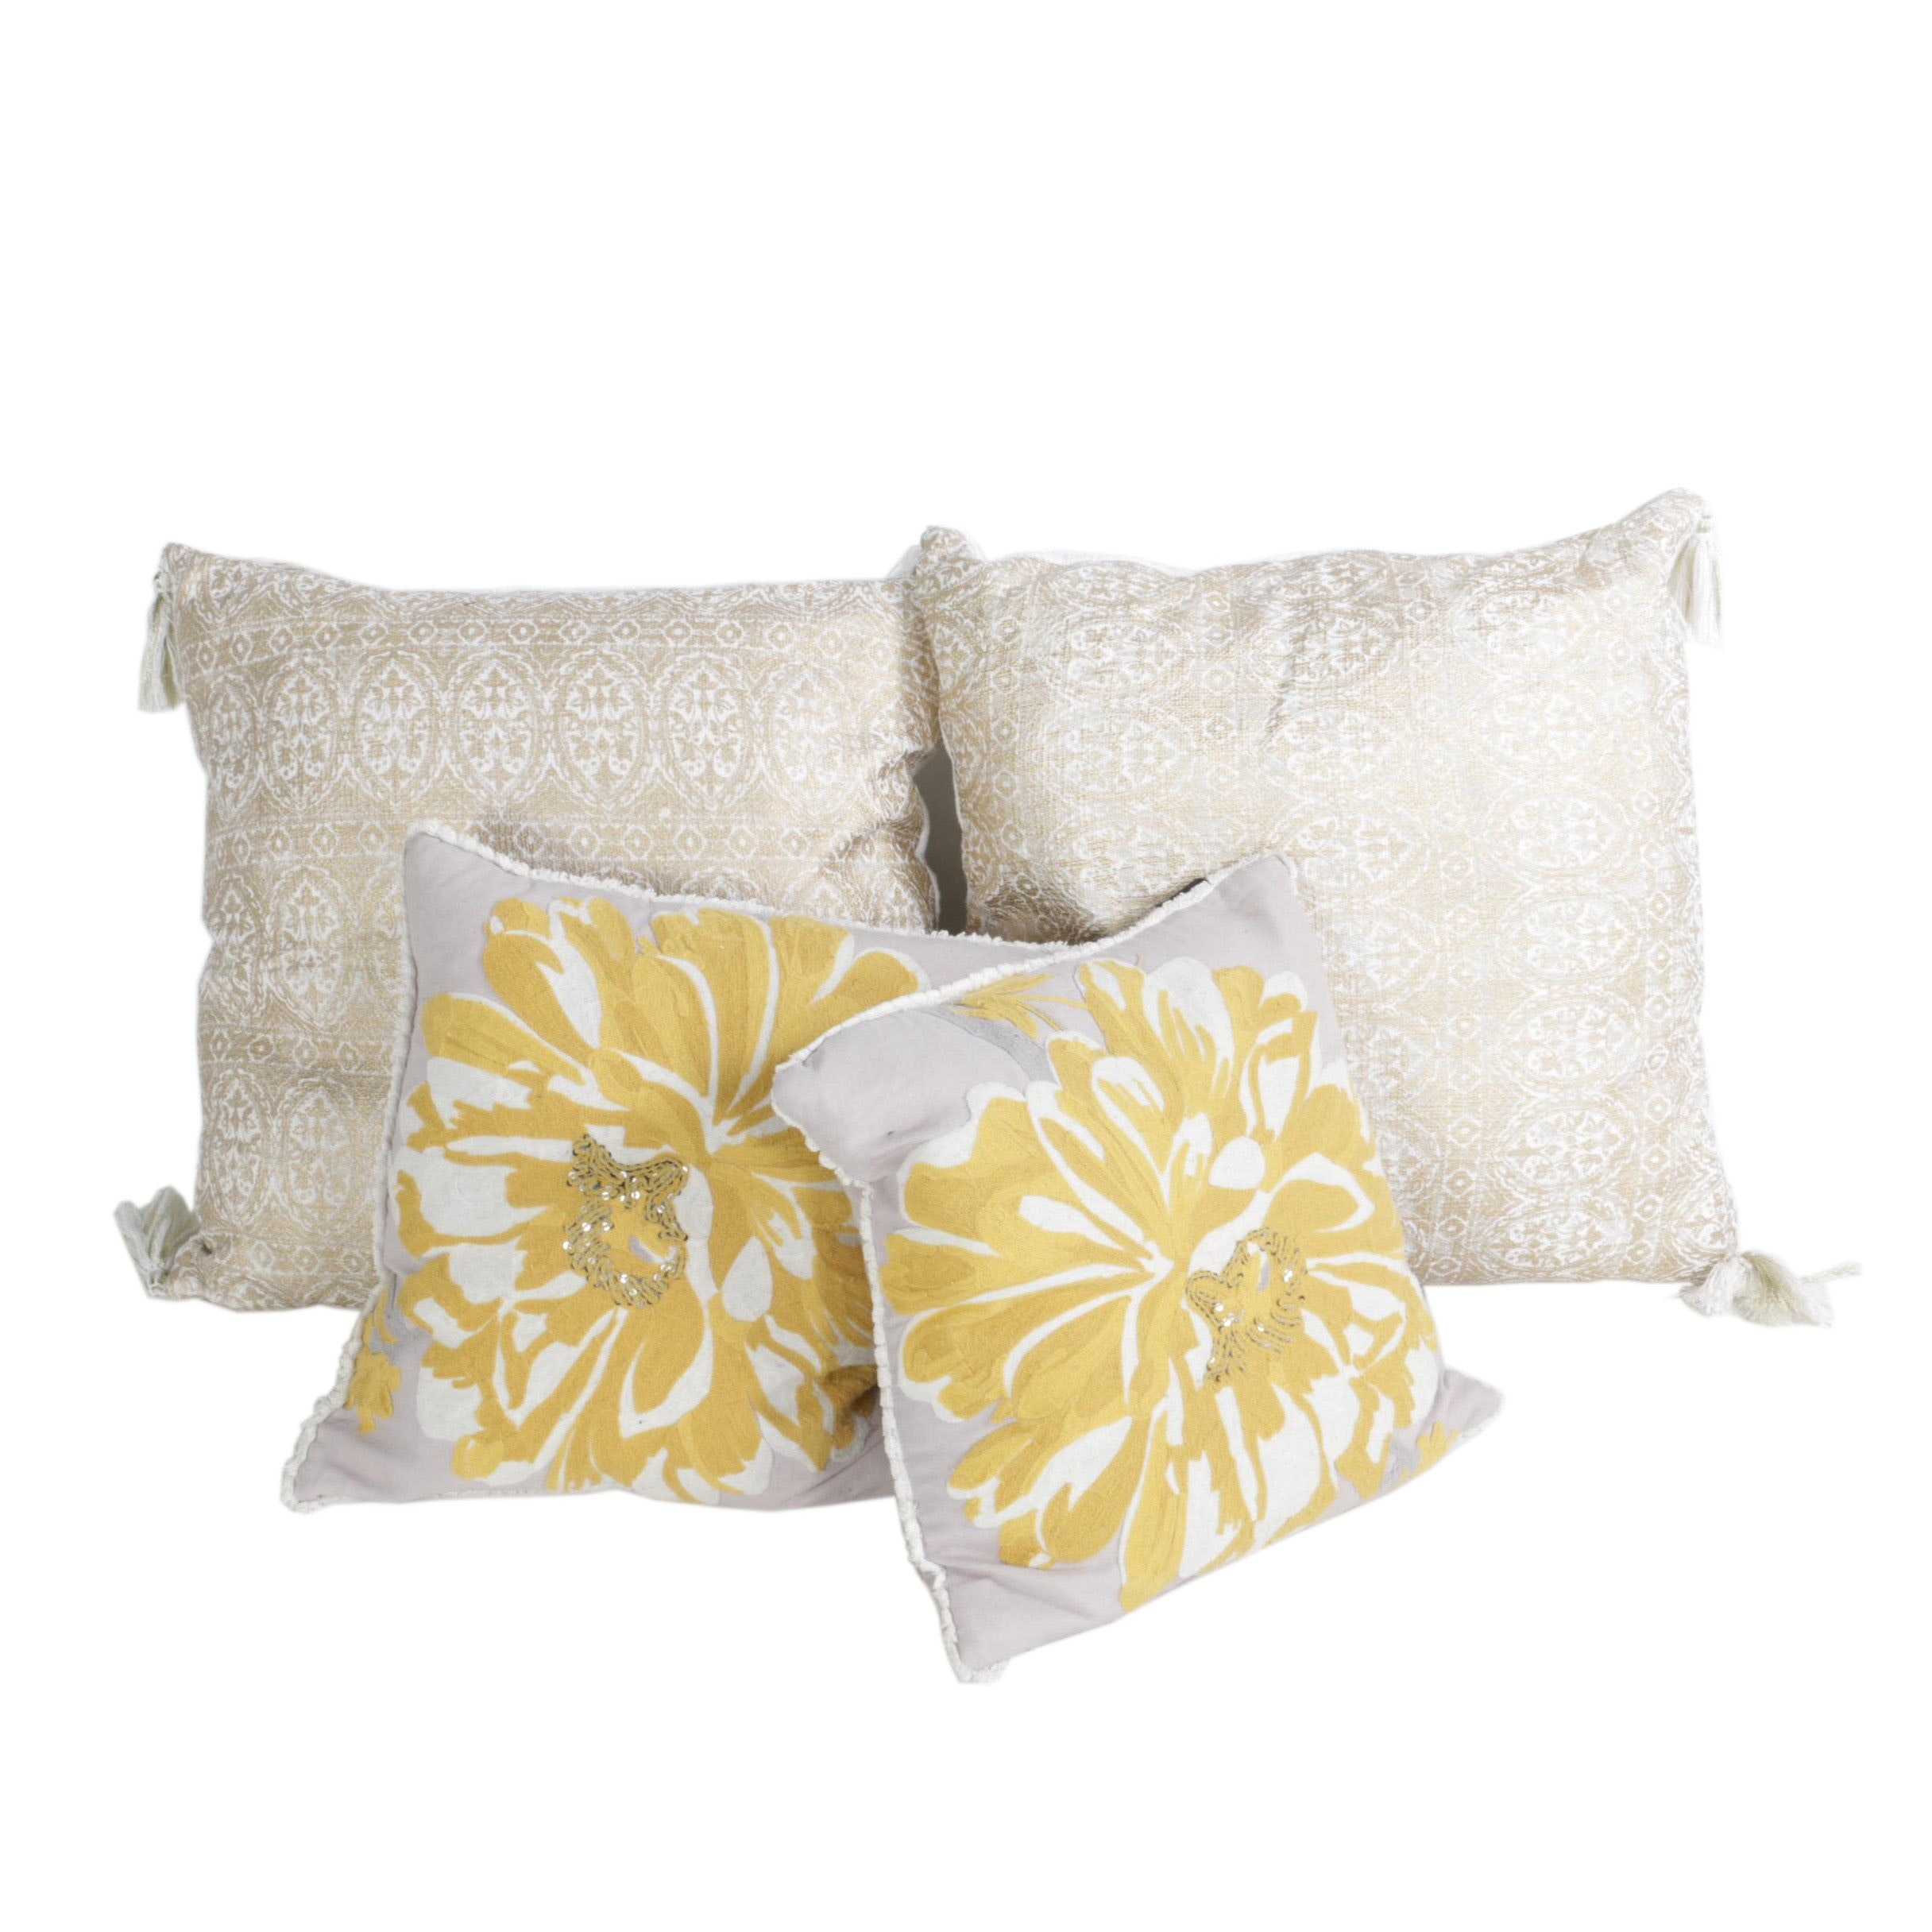 Pairs of Decorative Pillows with Floral Motifs and Tassel Accents